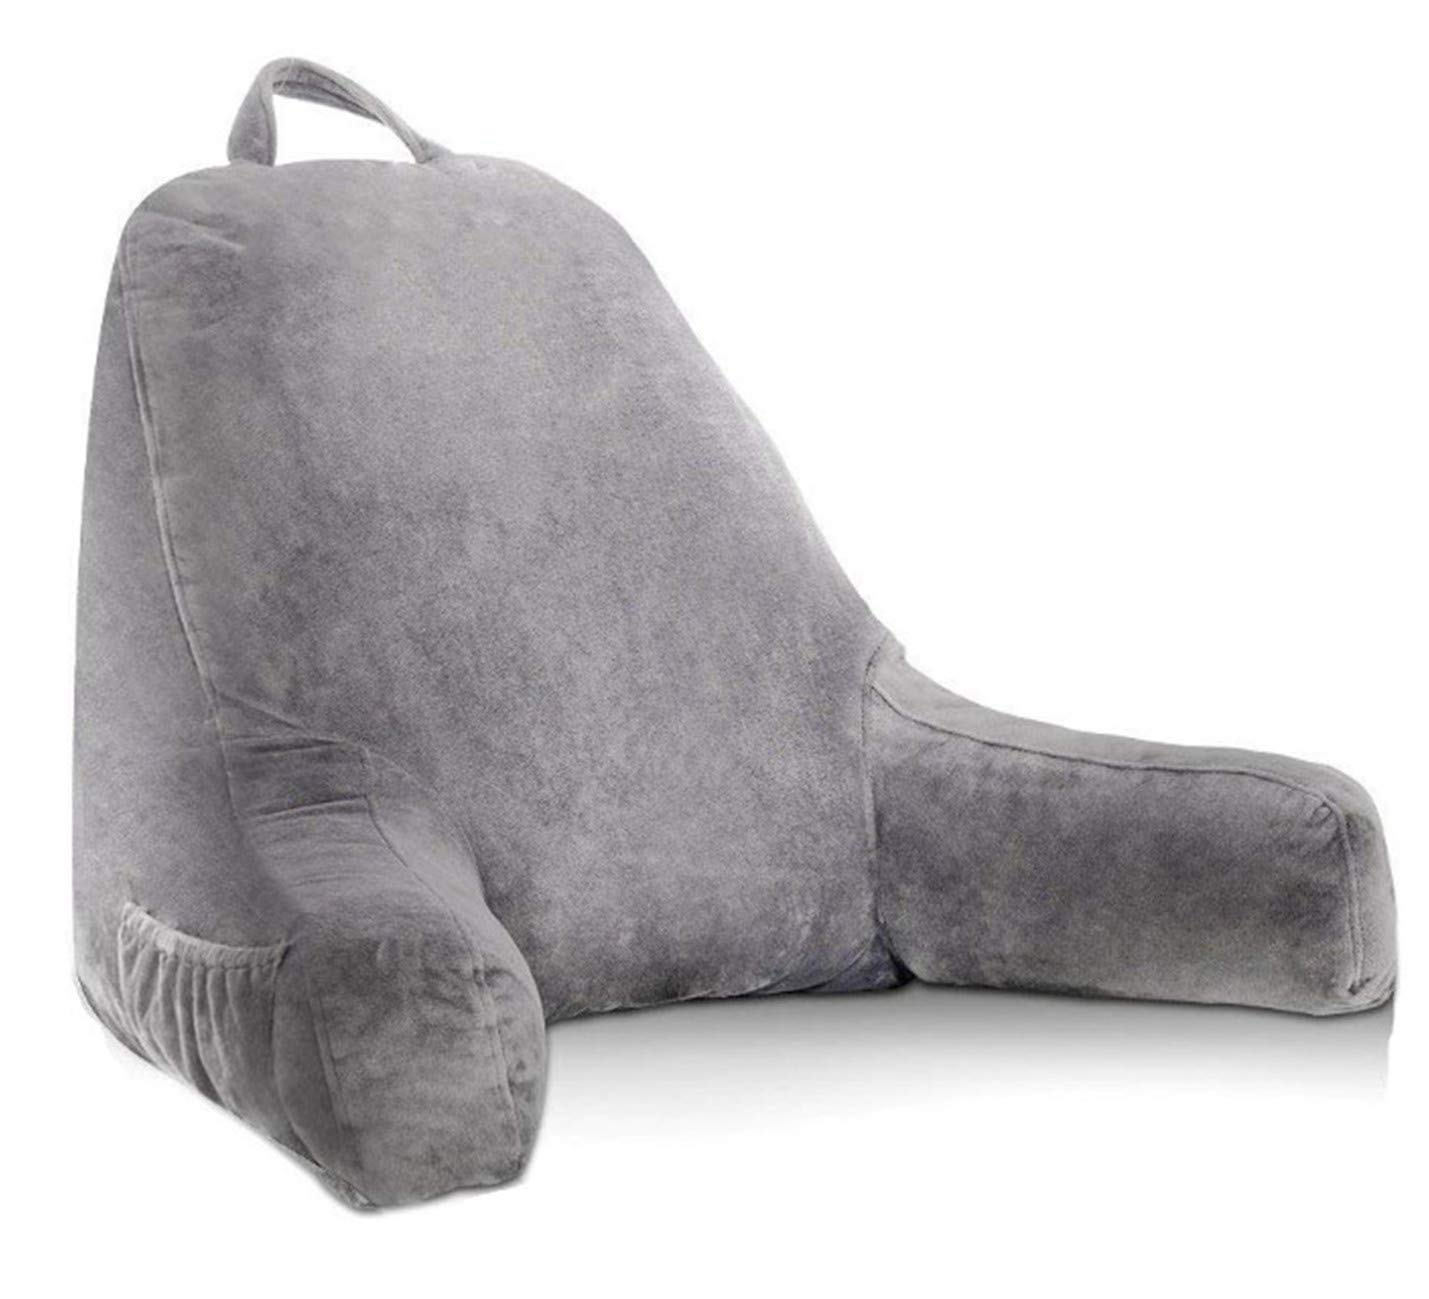 HZDY Large backrest Pillow Reading and TV Pillow, Detachable Neck Pillow, Removable and Washable Coat Gray, Advanced Memory Foam Blend Fill, Pregnant Women Cushions (Grey, Standard Grey)